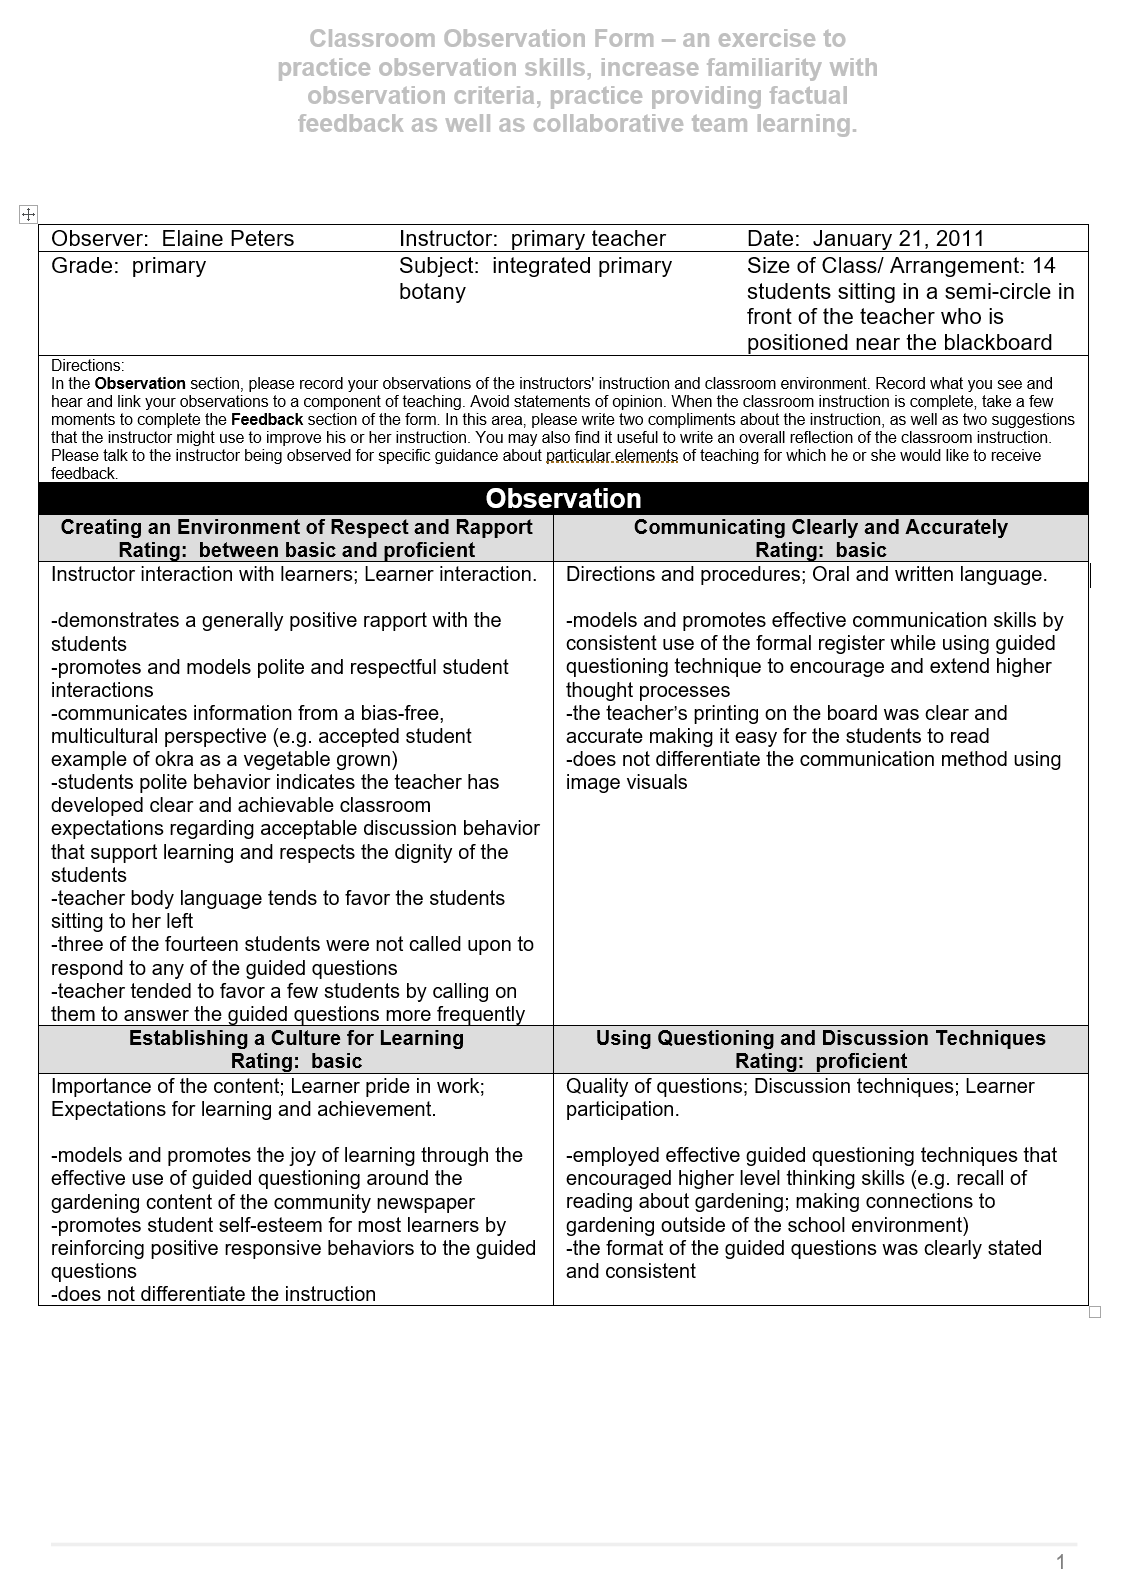 classroom Observation pg 1 of 3